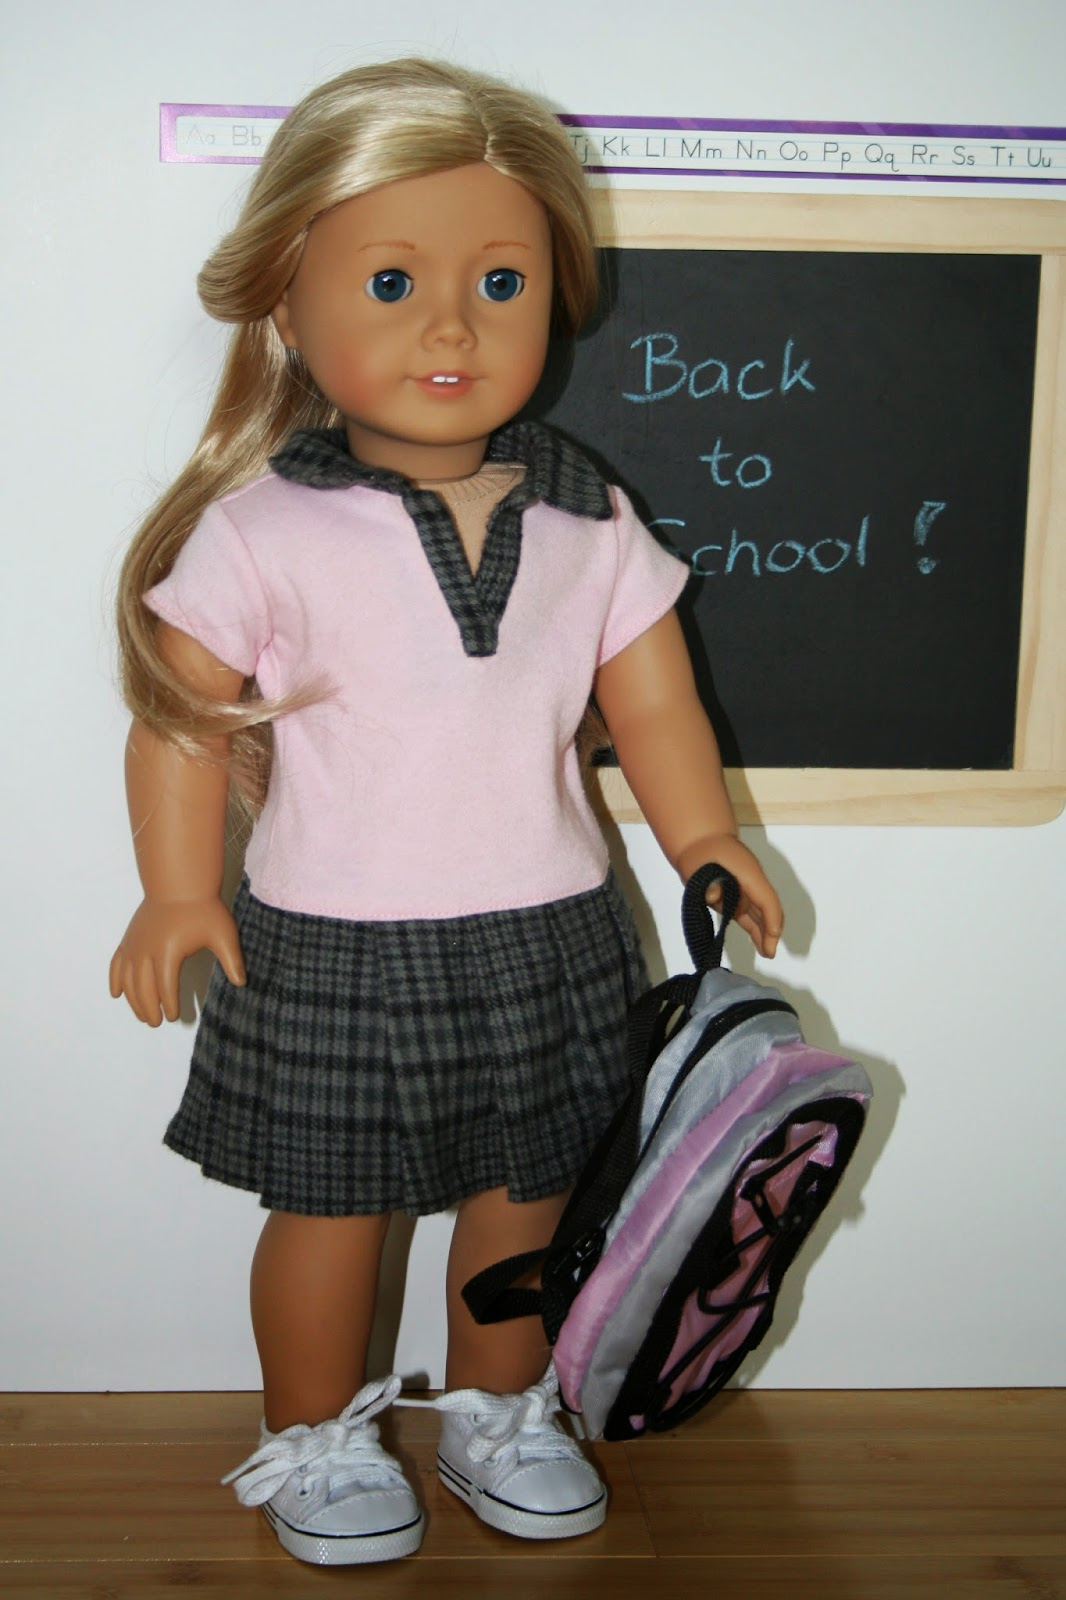 Arts and crafts for your american girl doll school outfit for school outfit for american girl doll jeuxipadfo Images